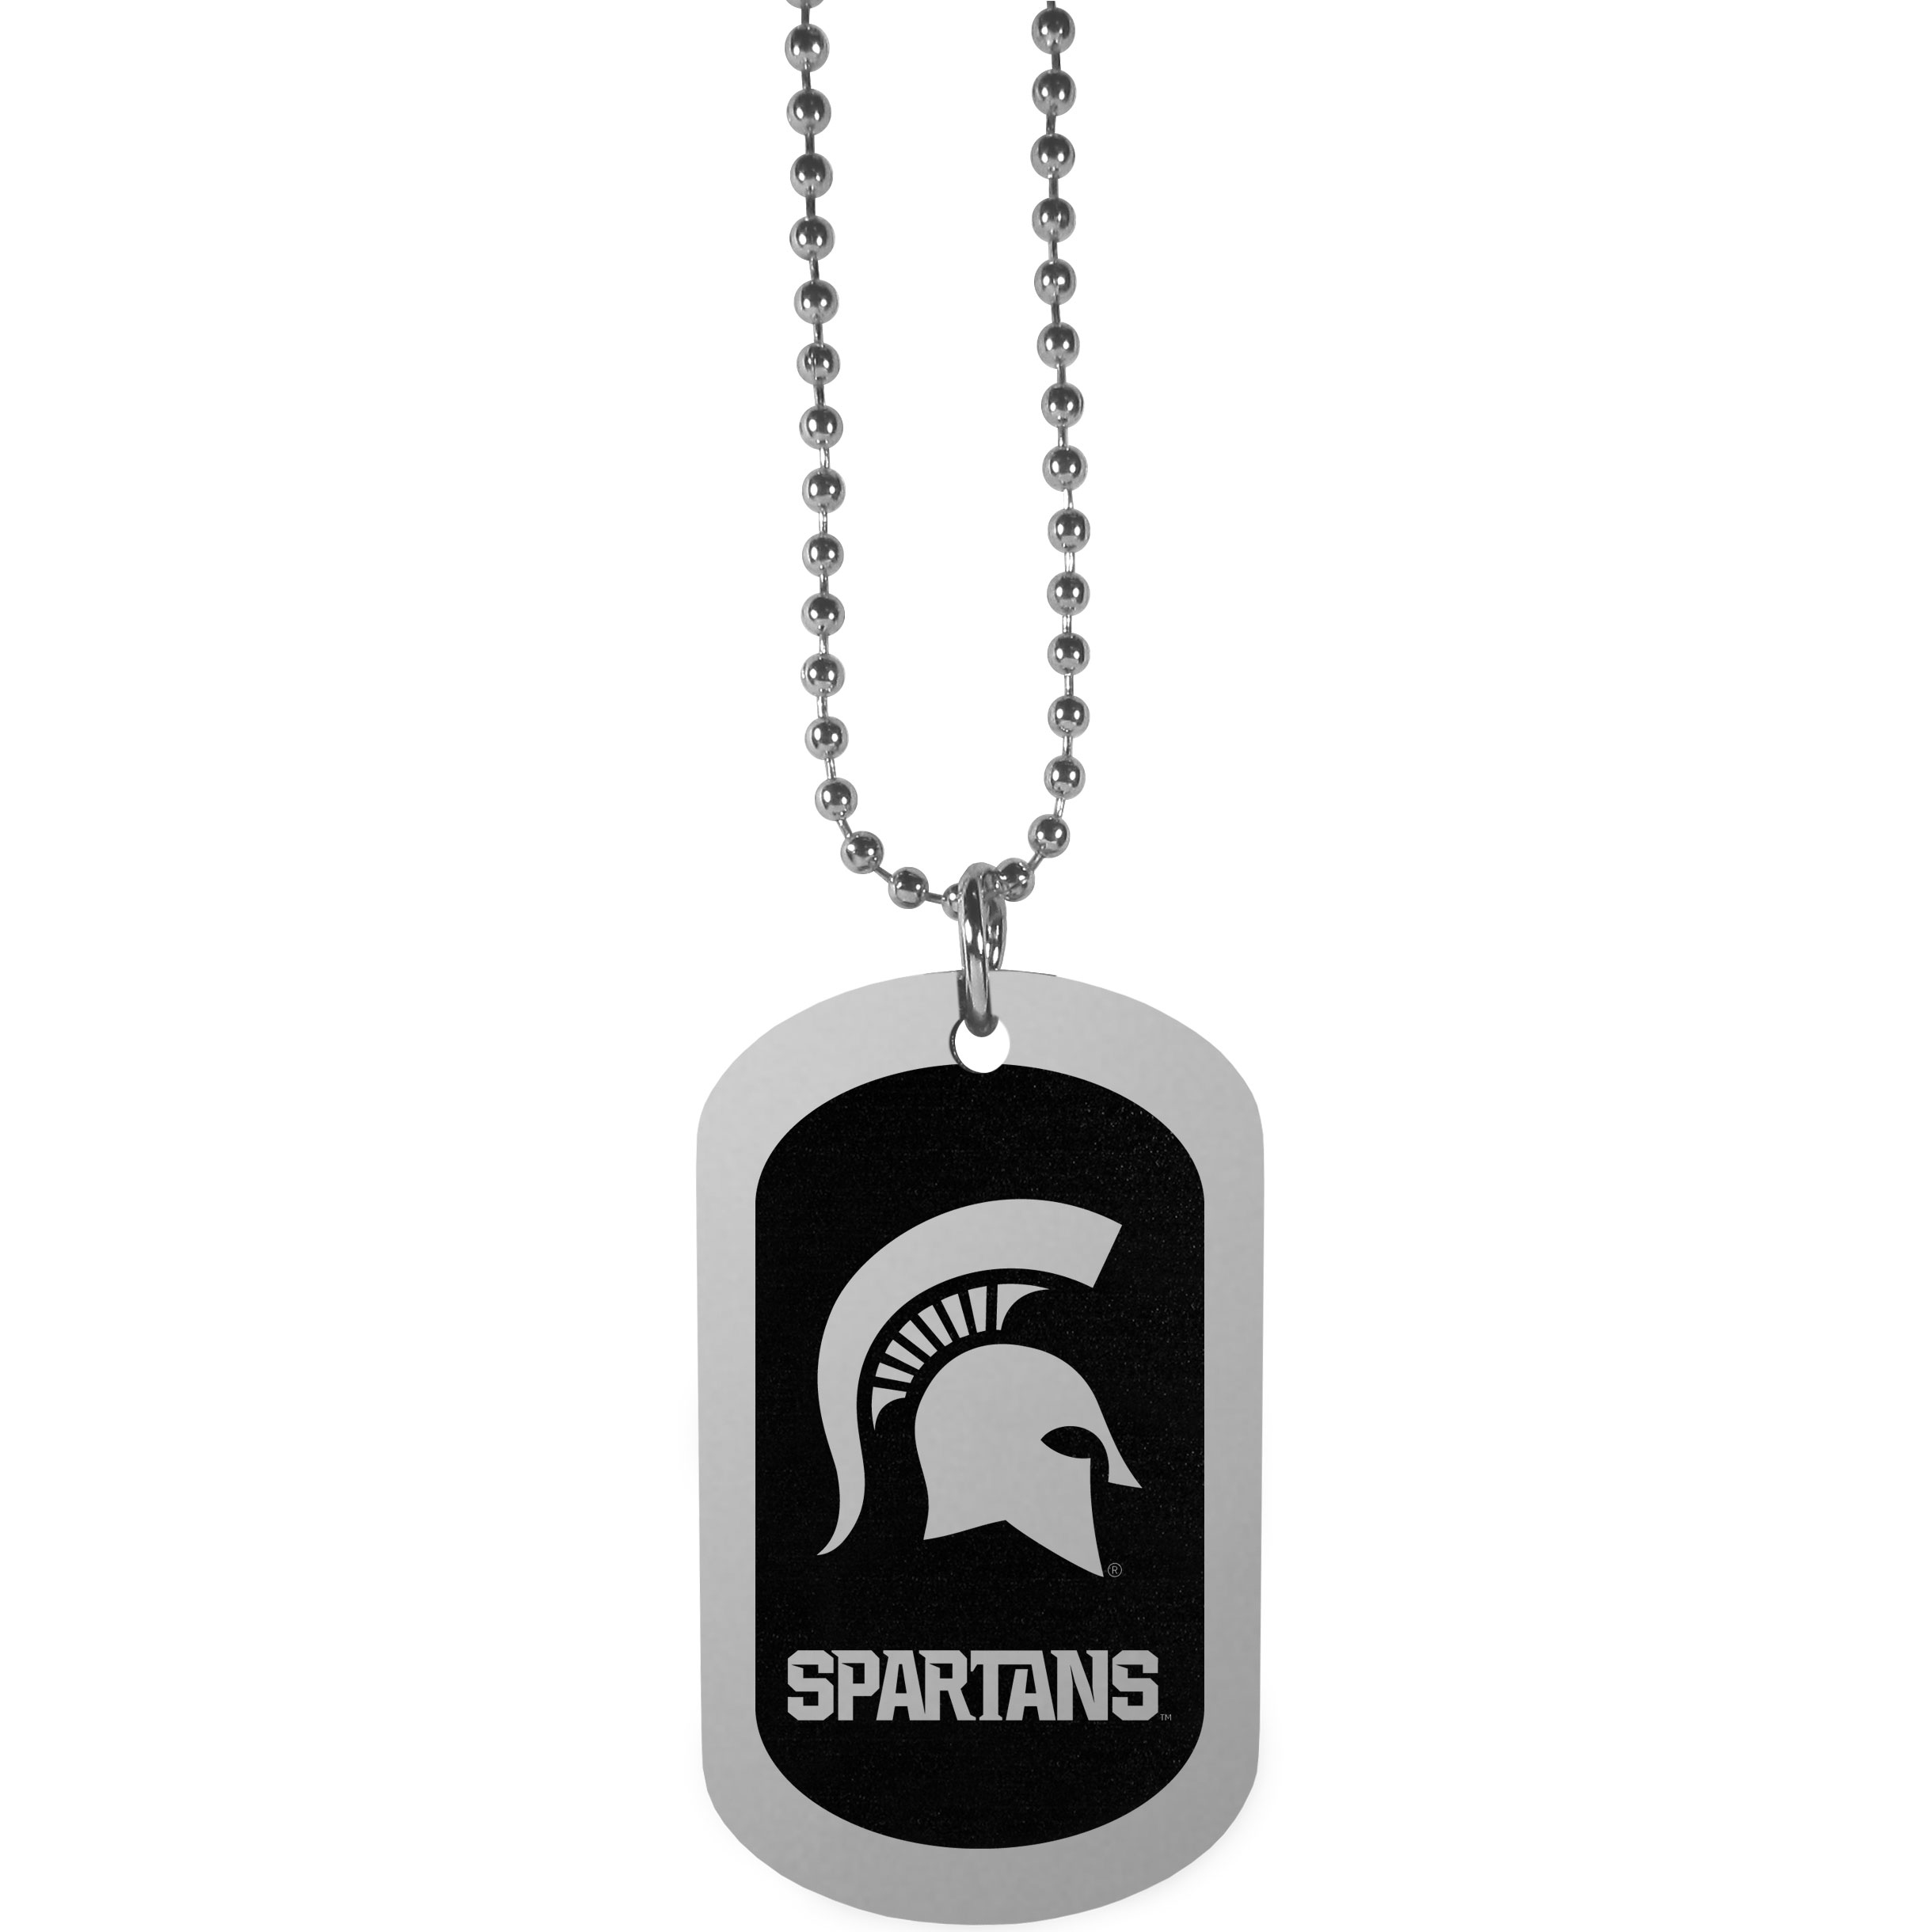 Michigan St. Spartans Chrome Tag Necklace - Dog tag necklaces are a fashion statement that is here to stay. The sporty version of the classic tag features a black printed over a high polish tag to create a bold and sporty look. The tag comes on a 26 inch ball chain with a ball and joint clasp. Any Michigan St. Spartans would be proud to wear this attractive fashion accessory.